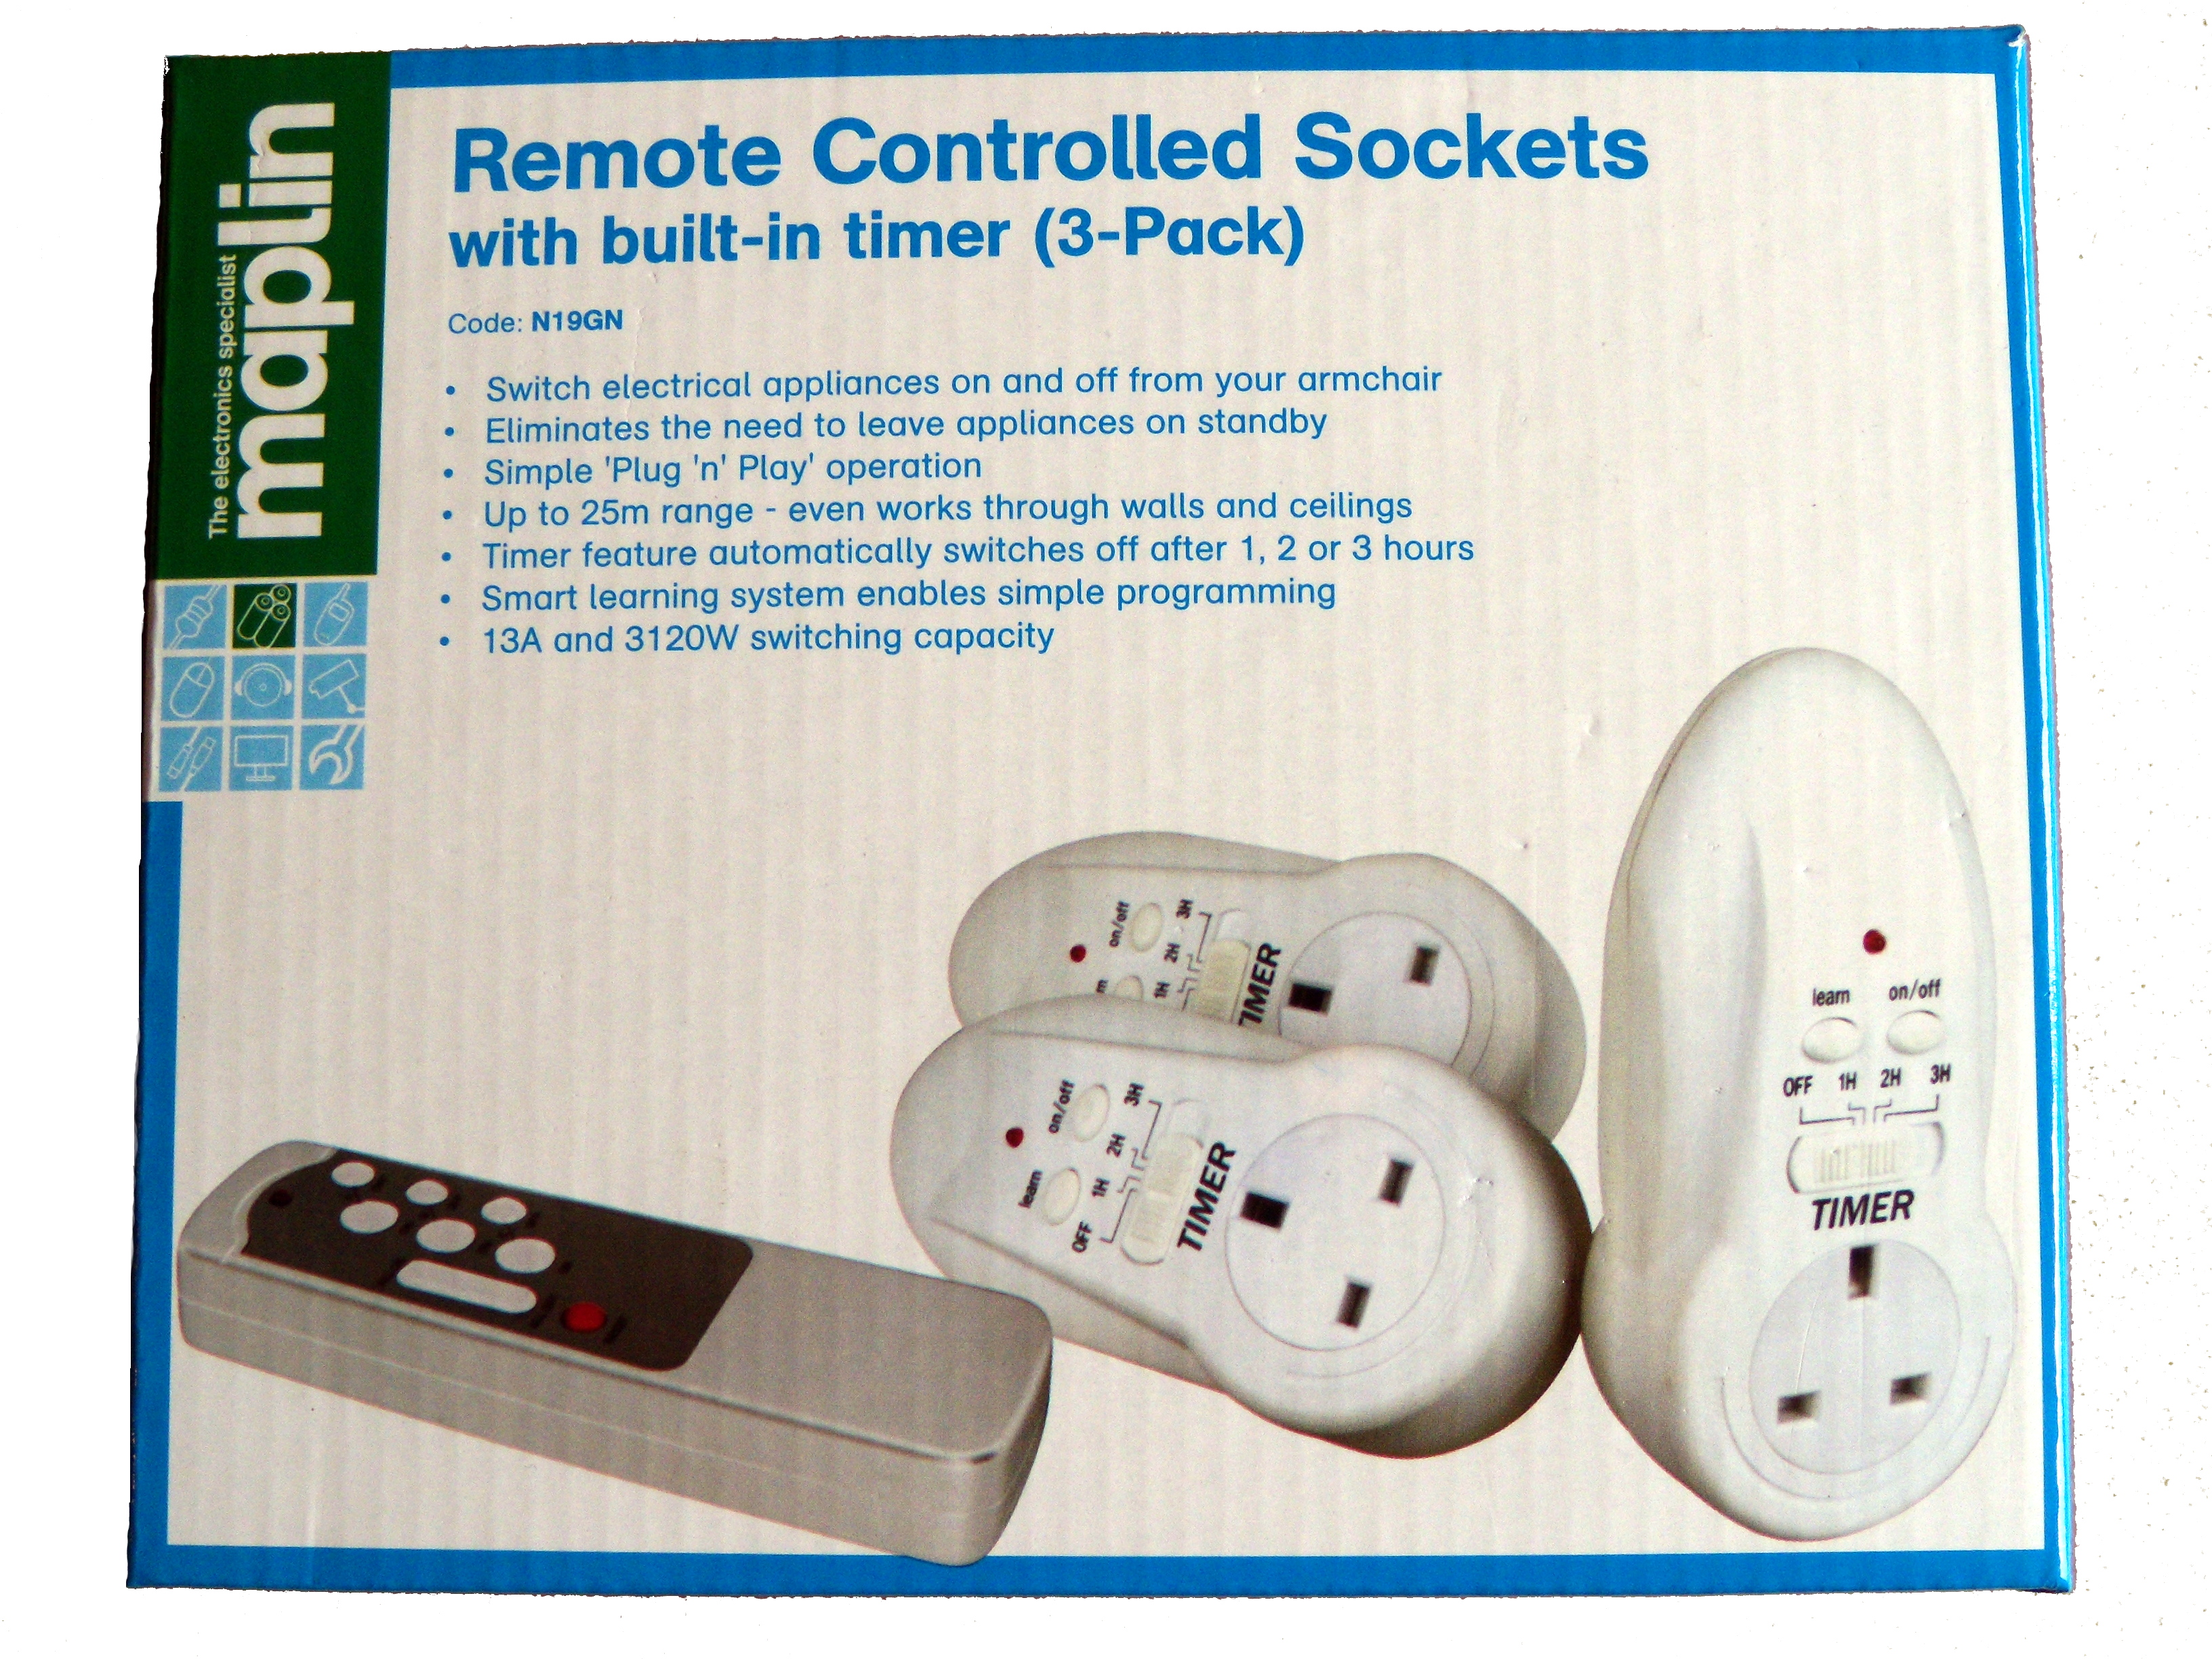 Hacking Remote Controlled Outlets Sconemad Appliance Switch Circuit Figure 1 The Original Outlet System I Bought